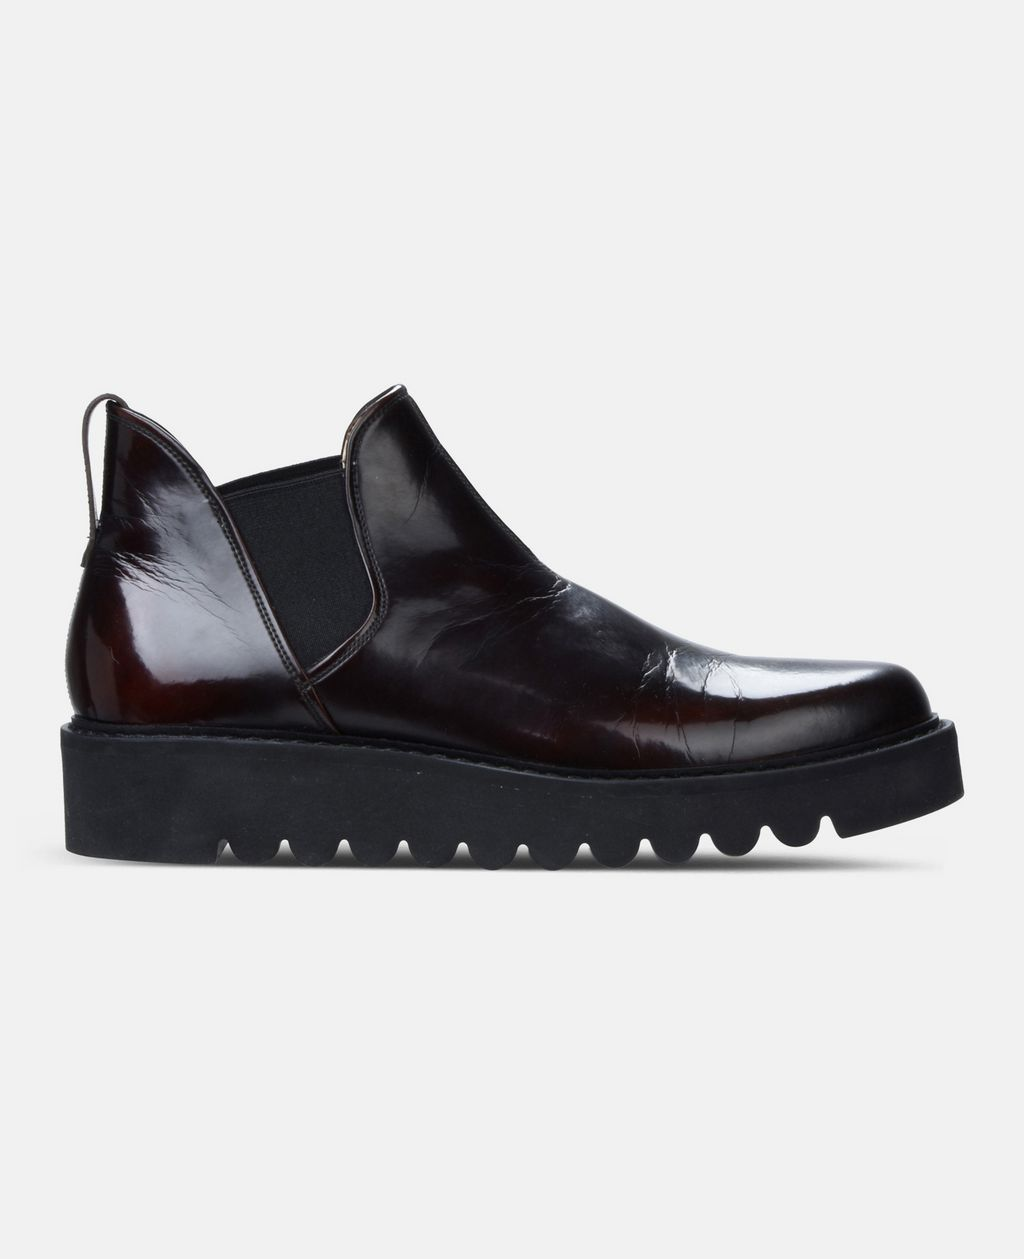 Black Low Chelsea Boots - STELLA McCARTNEY MEN